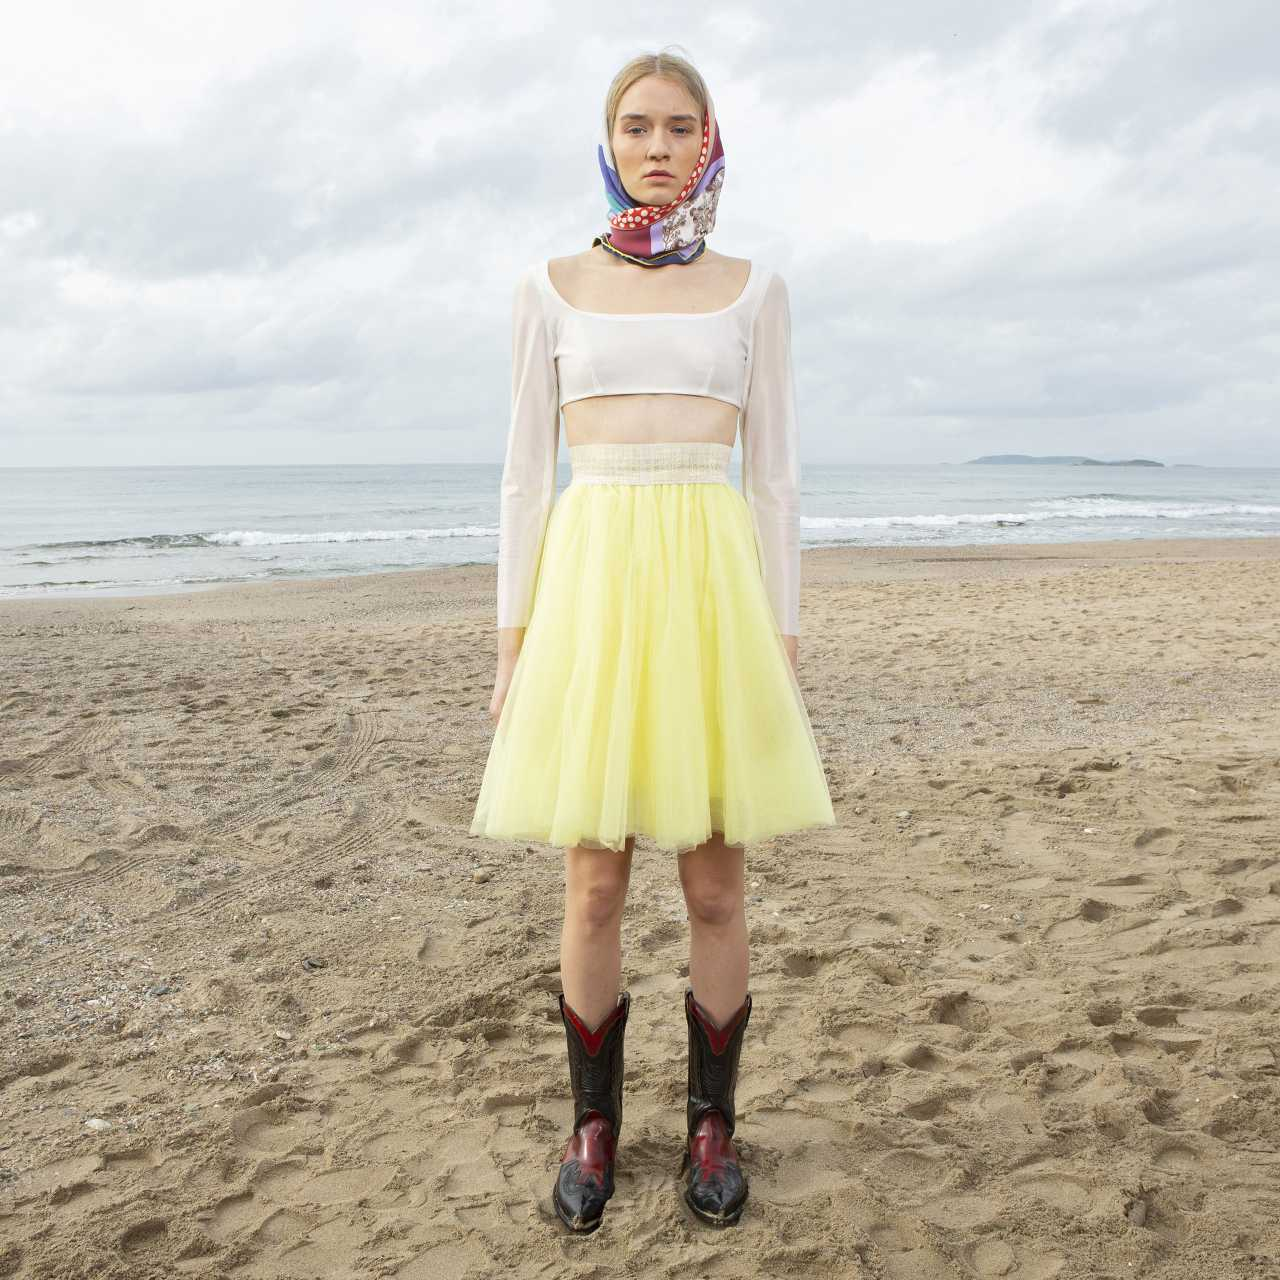 Product preview: Tulle Tutu Skirt Short Yellow